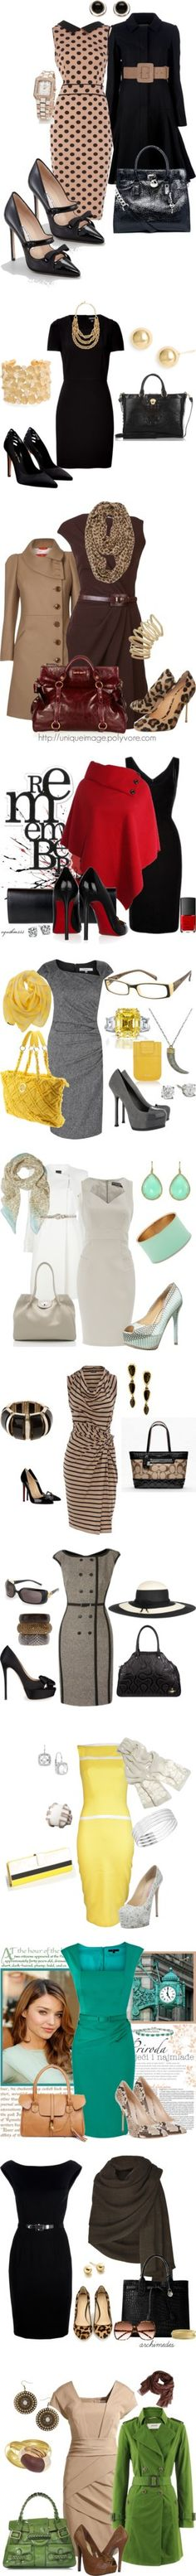 """Dressed For The Day Shift"" by esha2001 on Polyvore"